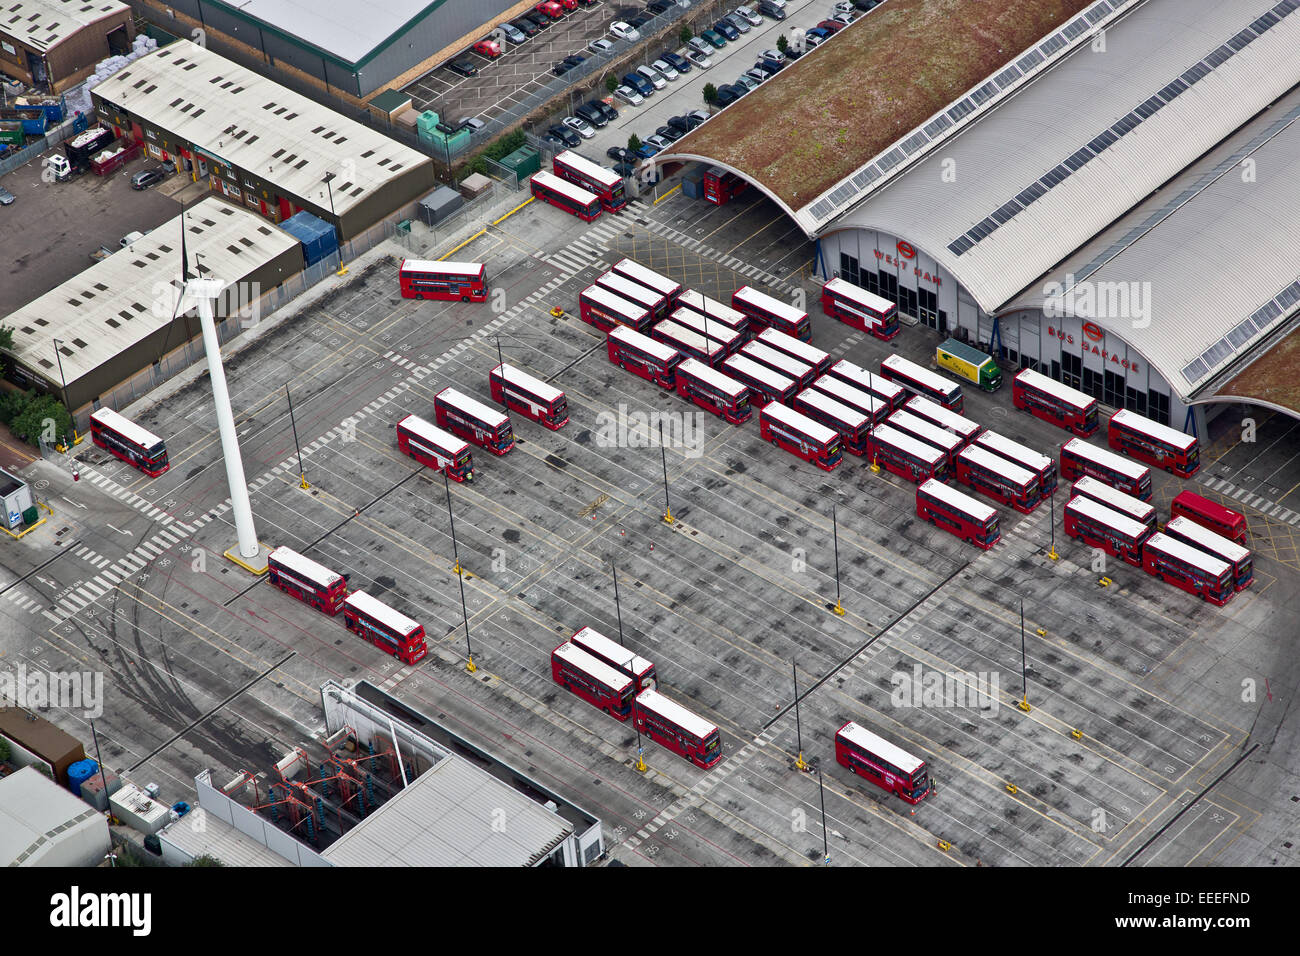 Vista aerea del West Ham Bus Garage Immagini Stock